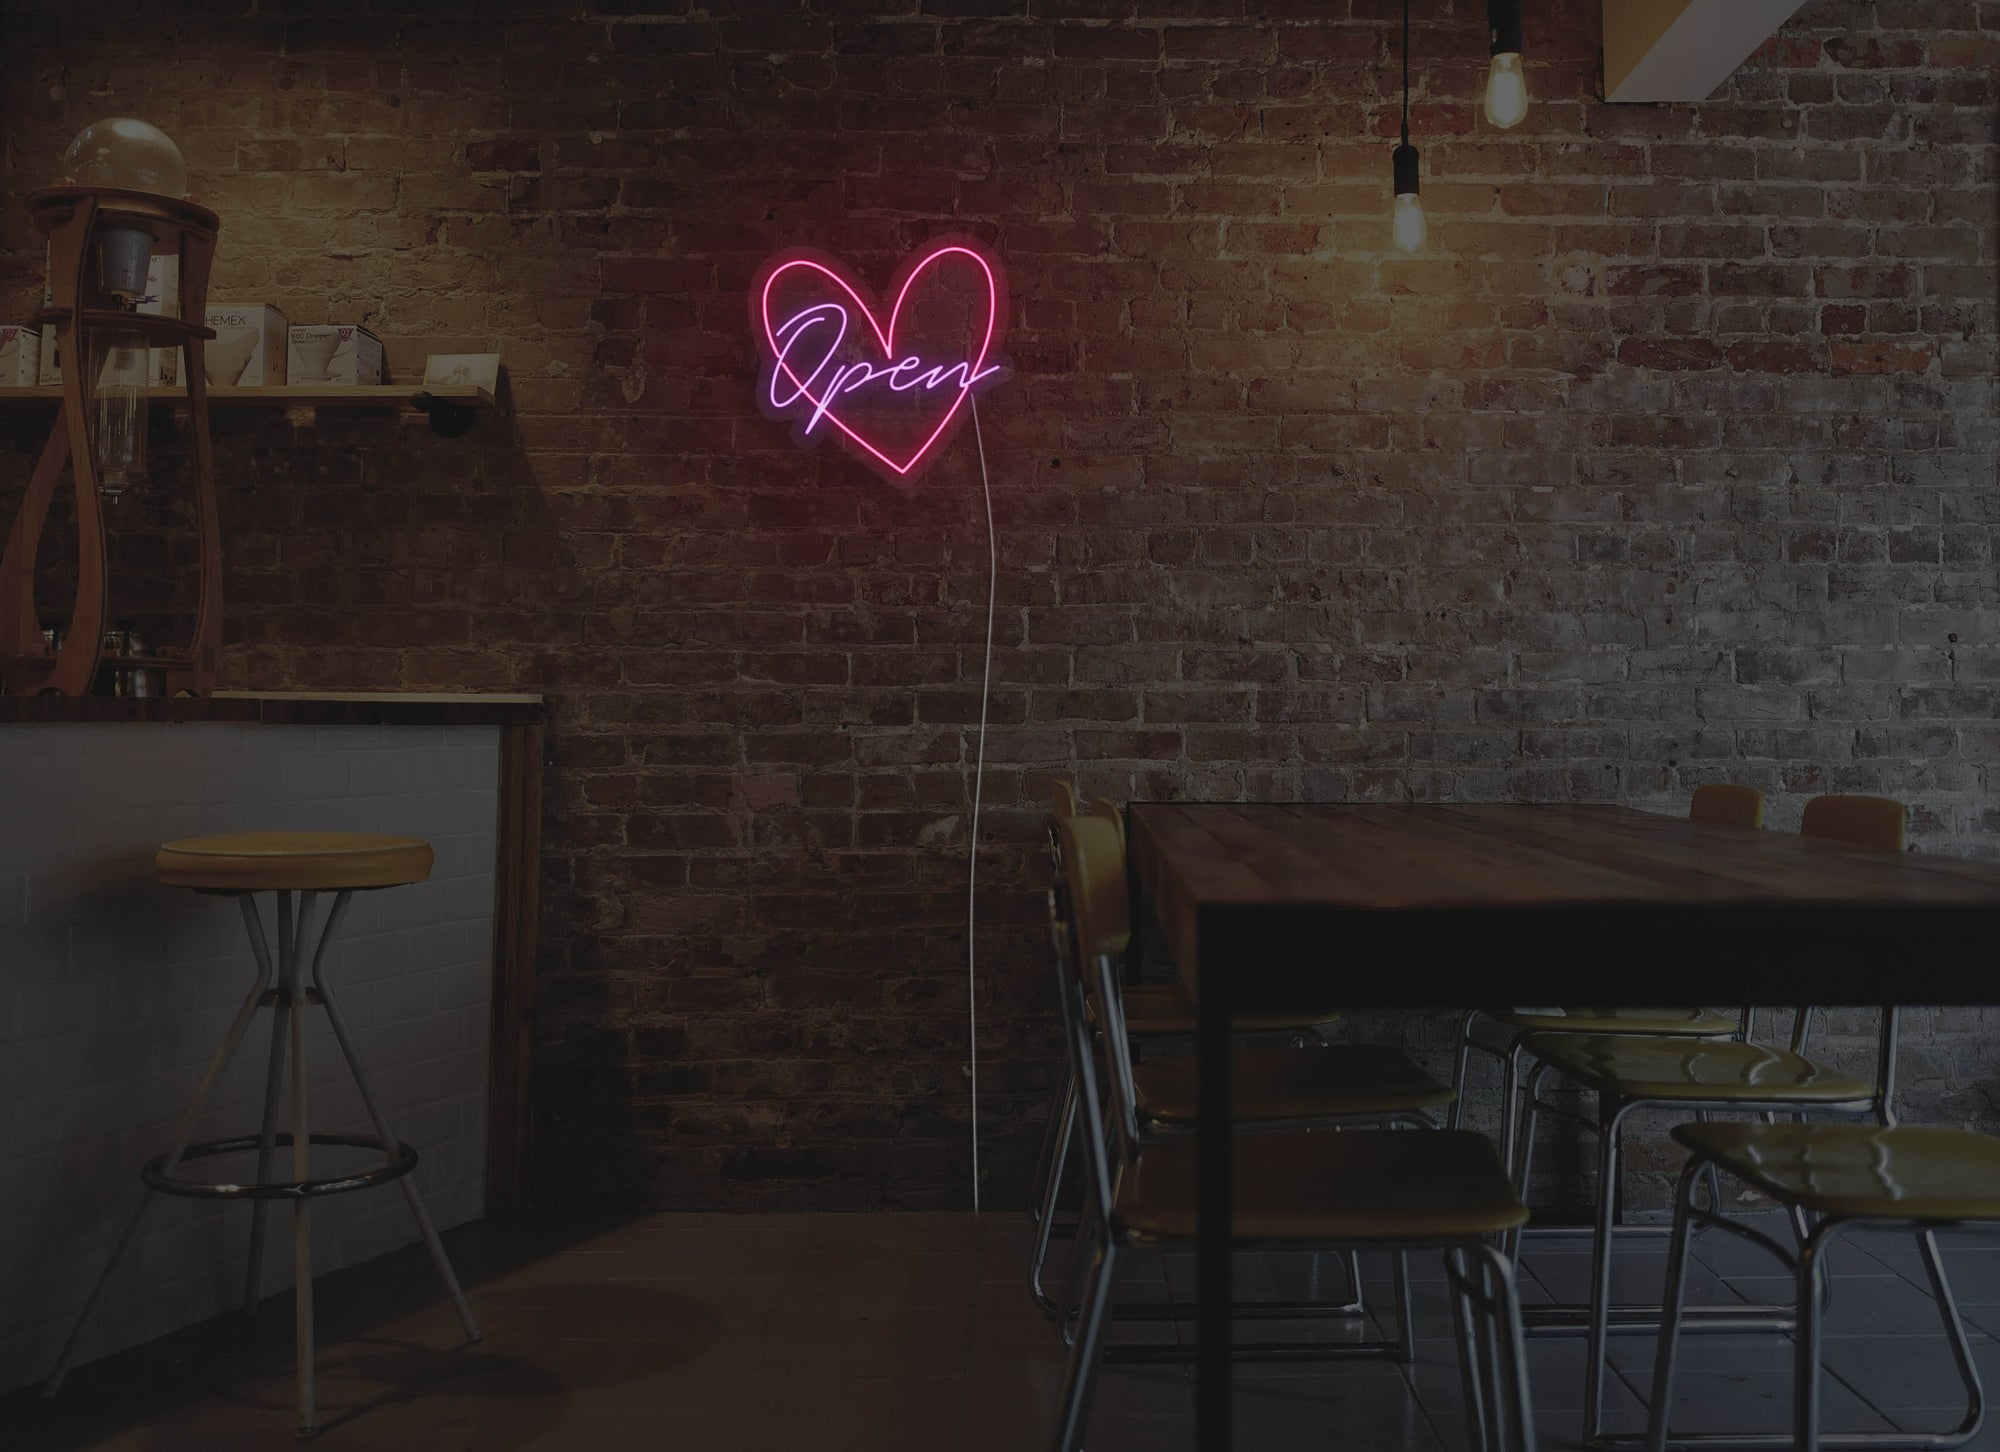 Heart Open LED Neon Sign